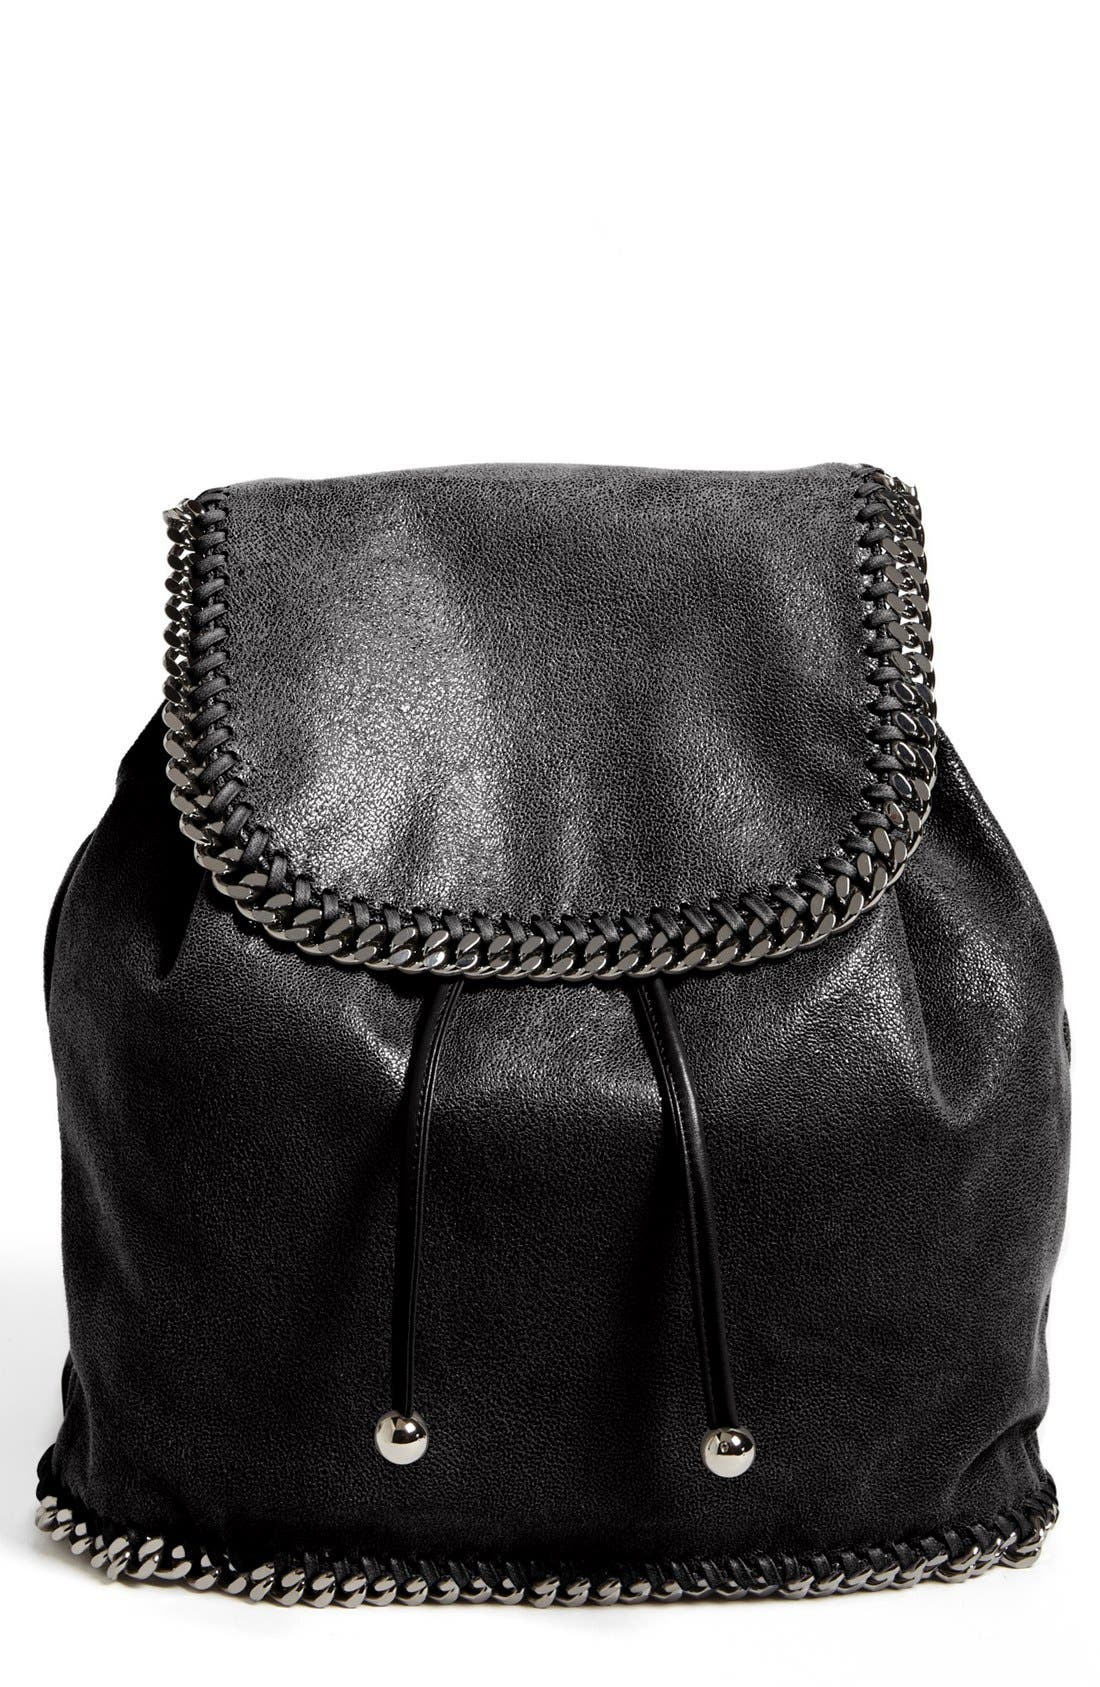 Main Image - Stella McCartney 'Falabella - Shaggy Deer' Backpack